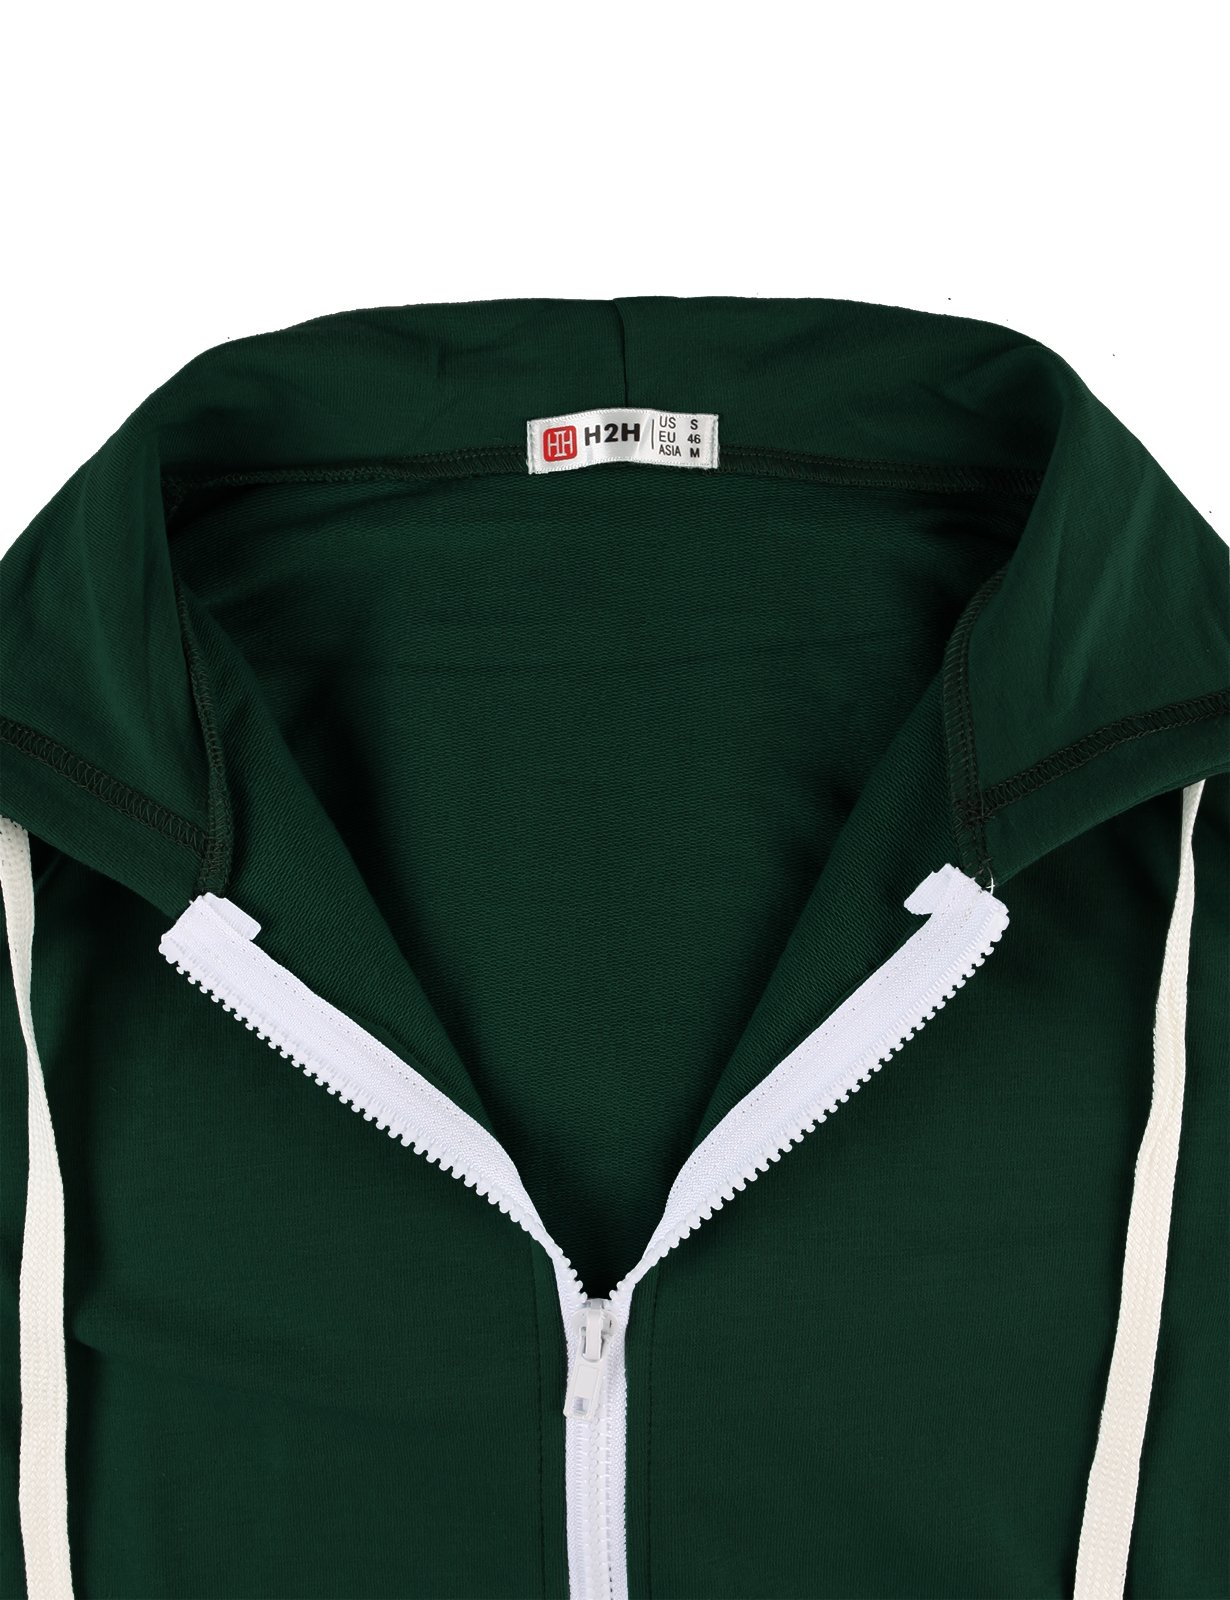 H2H Men's Casual Striped Drawstring Hooded And Zipper Closure Hoodies FORESTGREEN US XL/Asia XXXL (JNSK24) by H2H (Image #5)